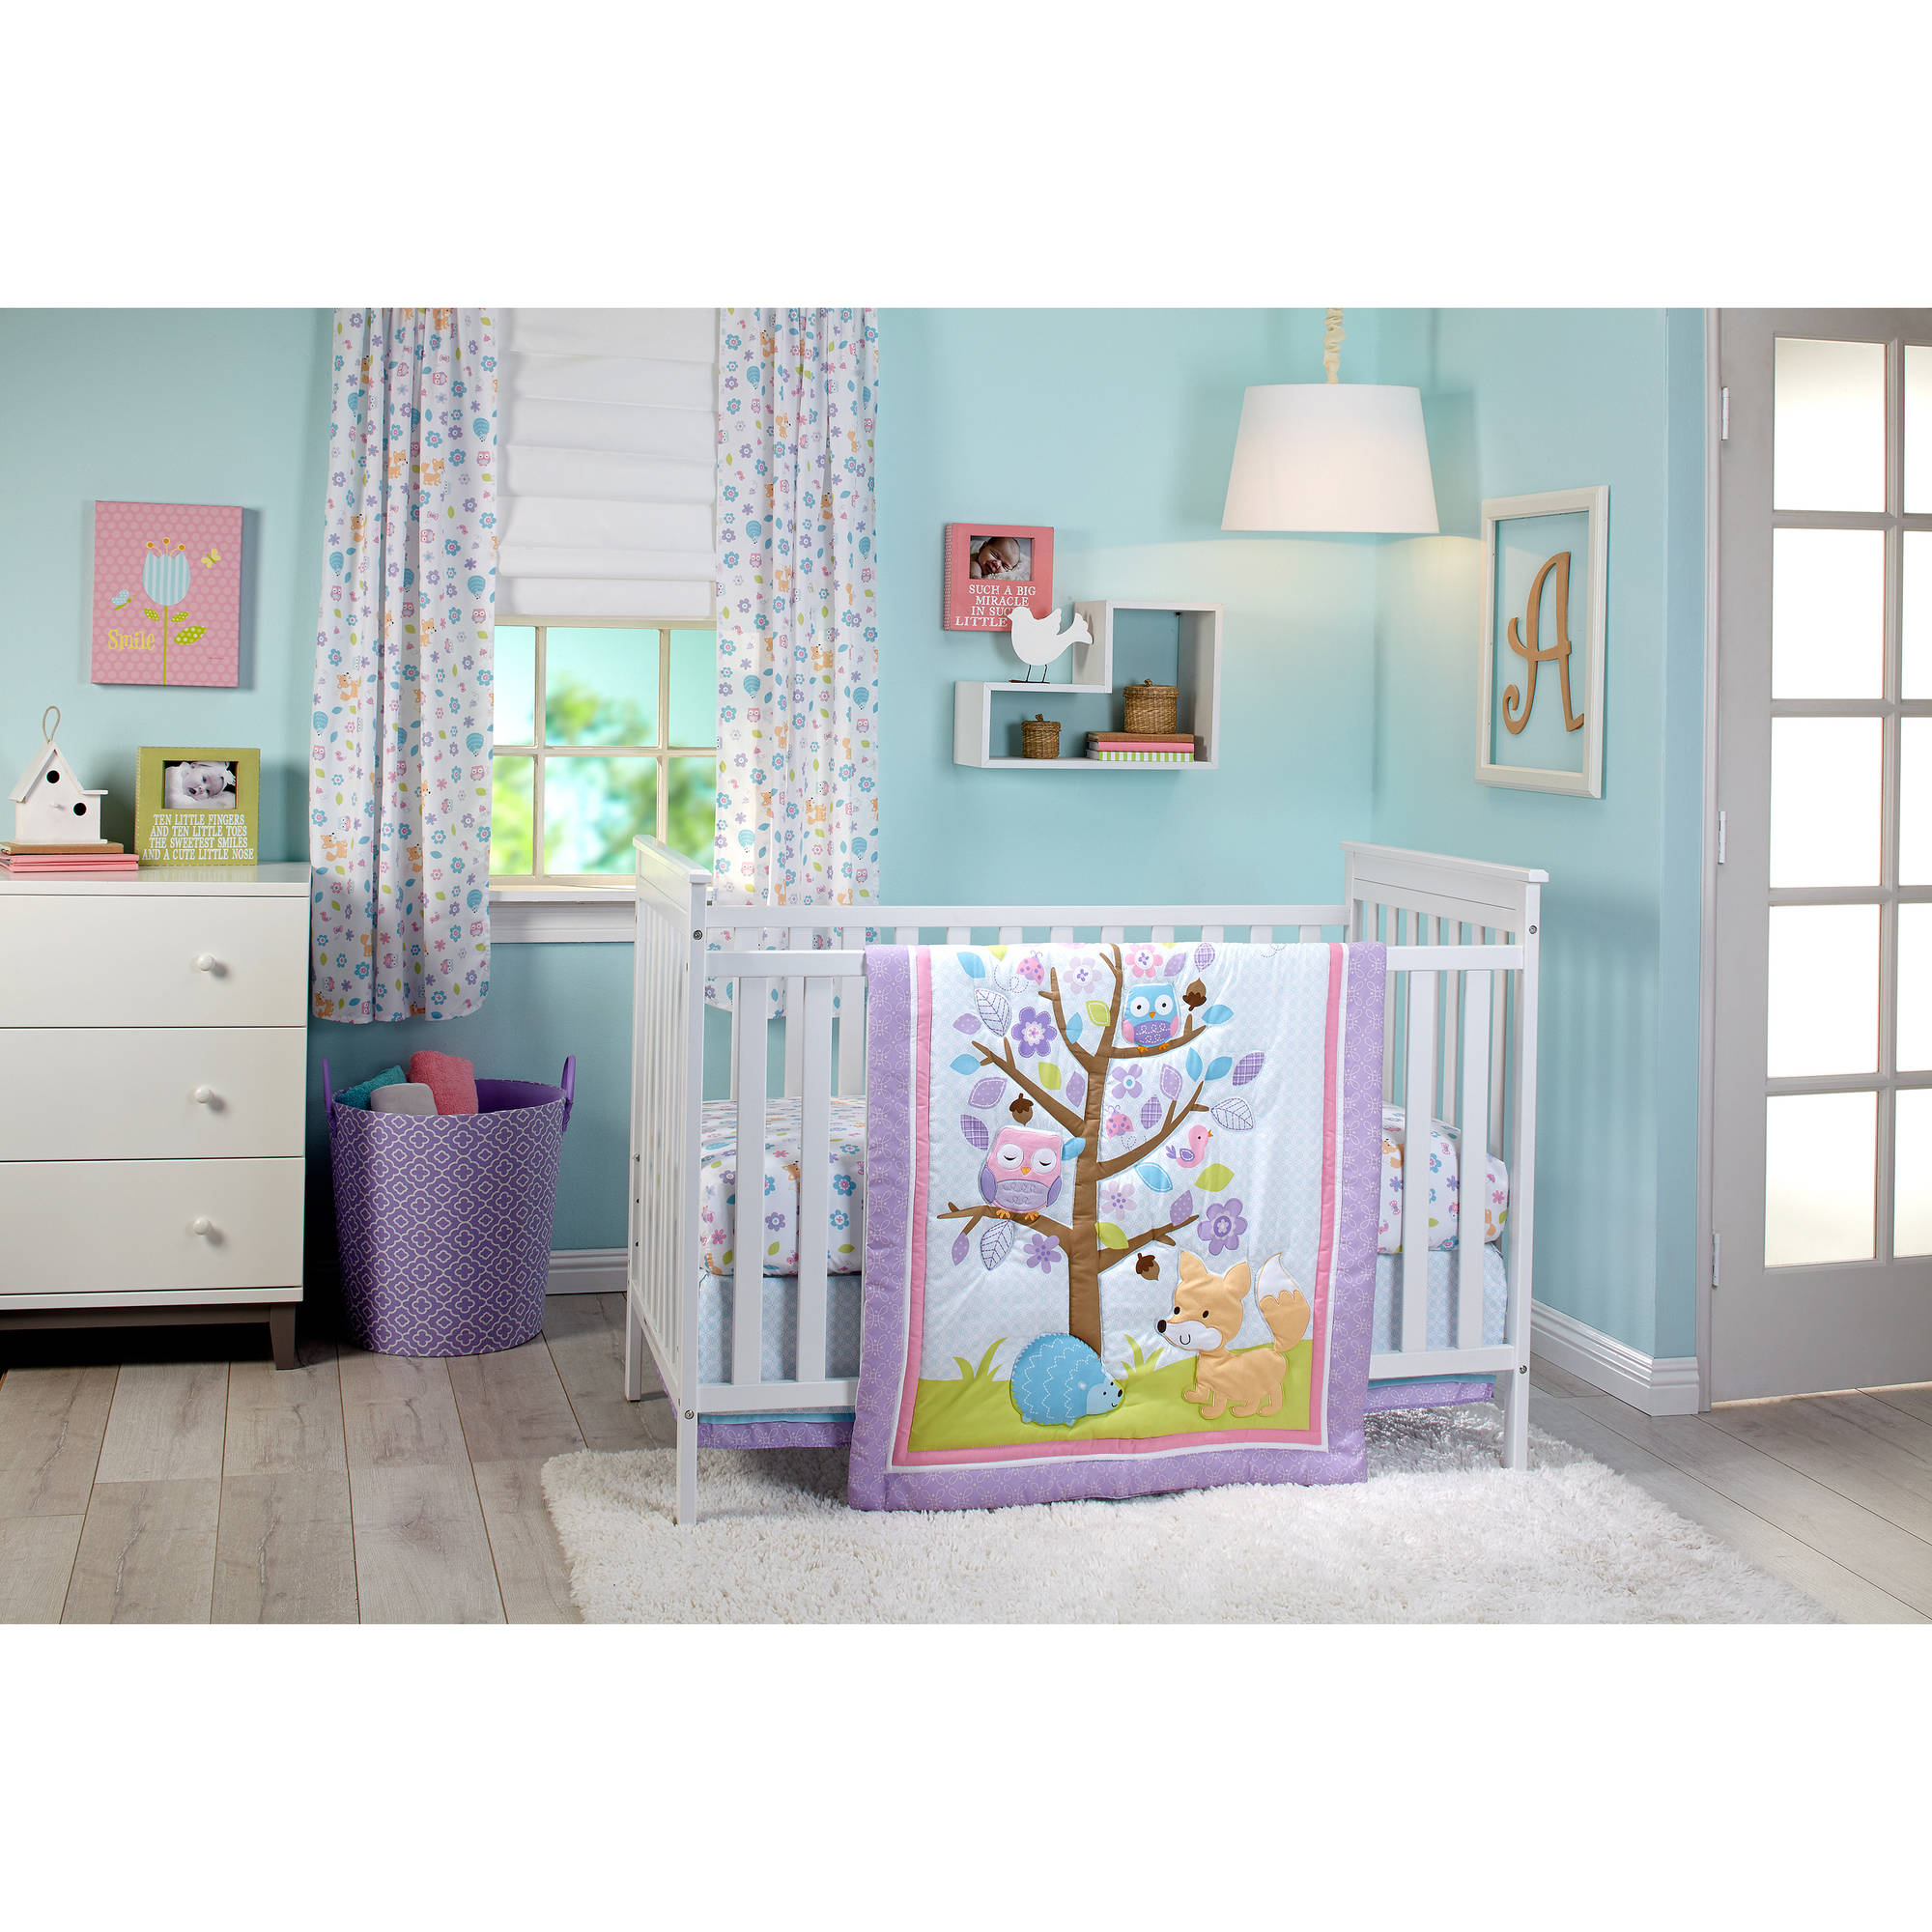 Little Love Adorable Orchard 3-Piece Crib Bedding Set